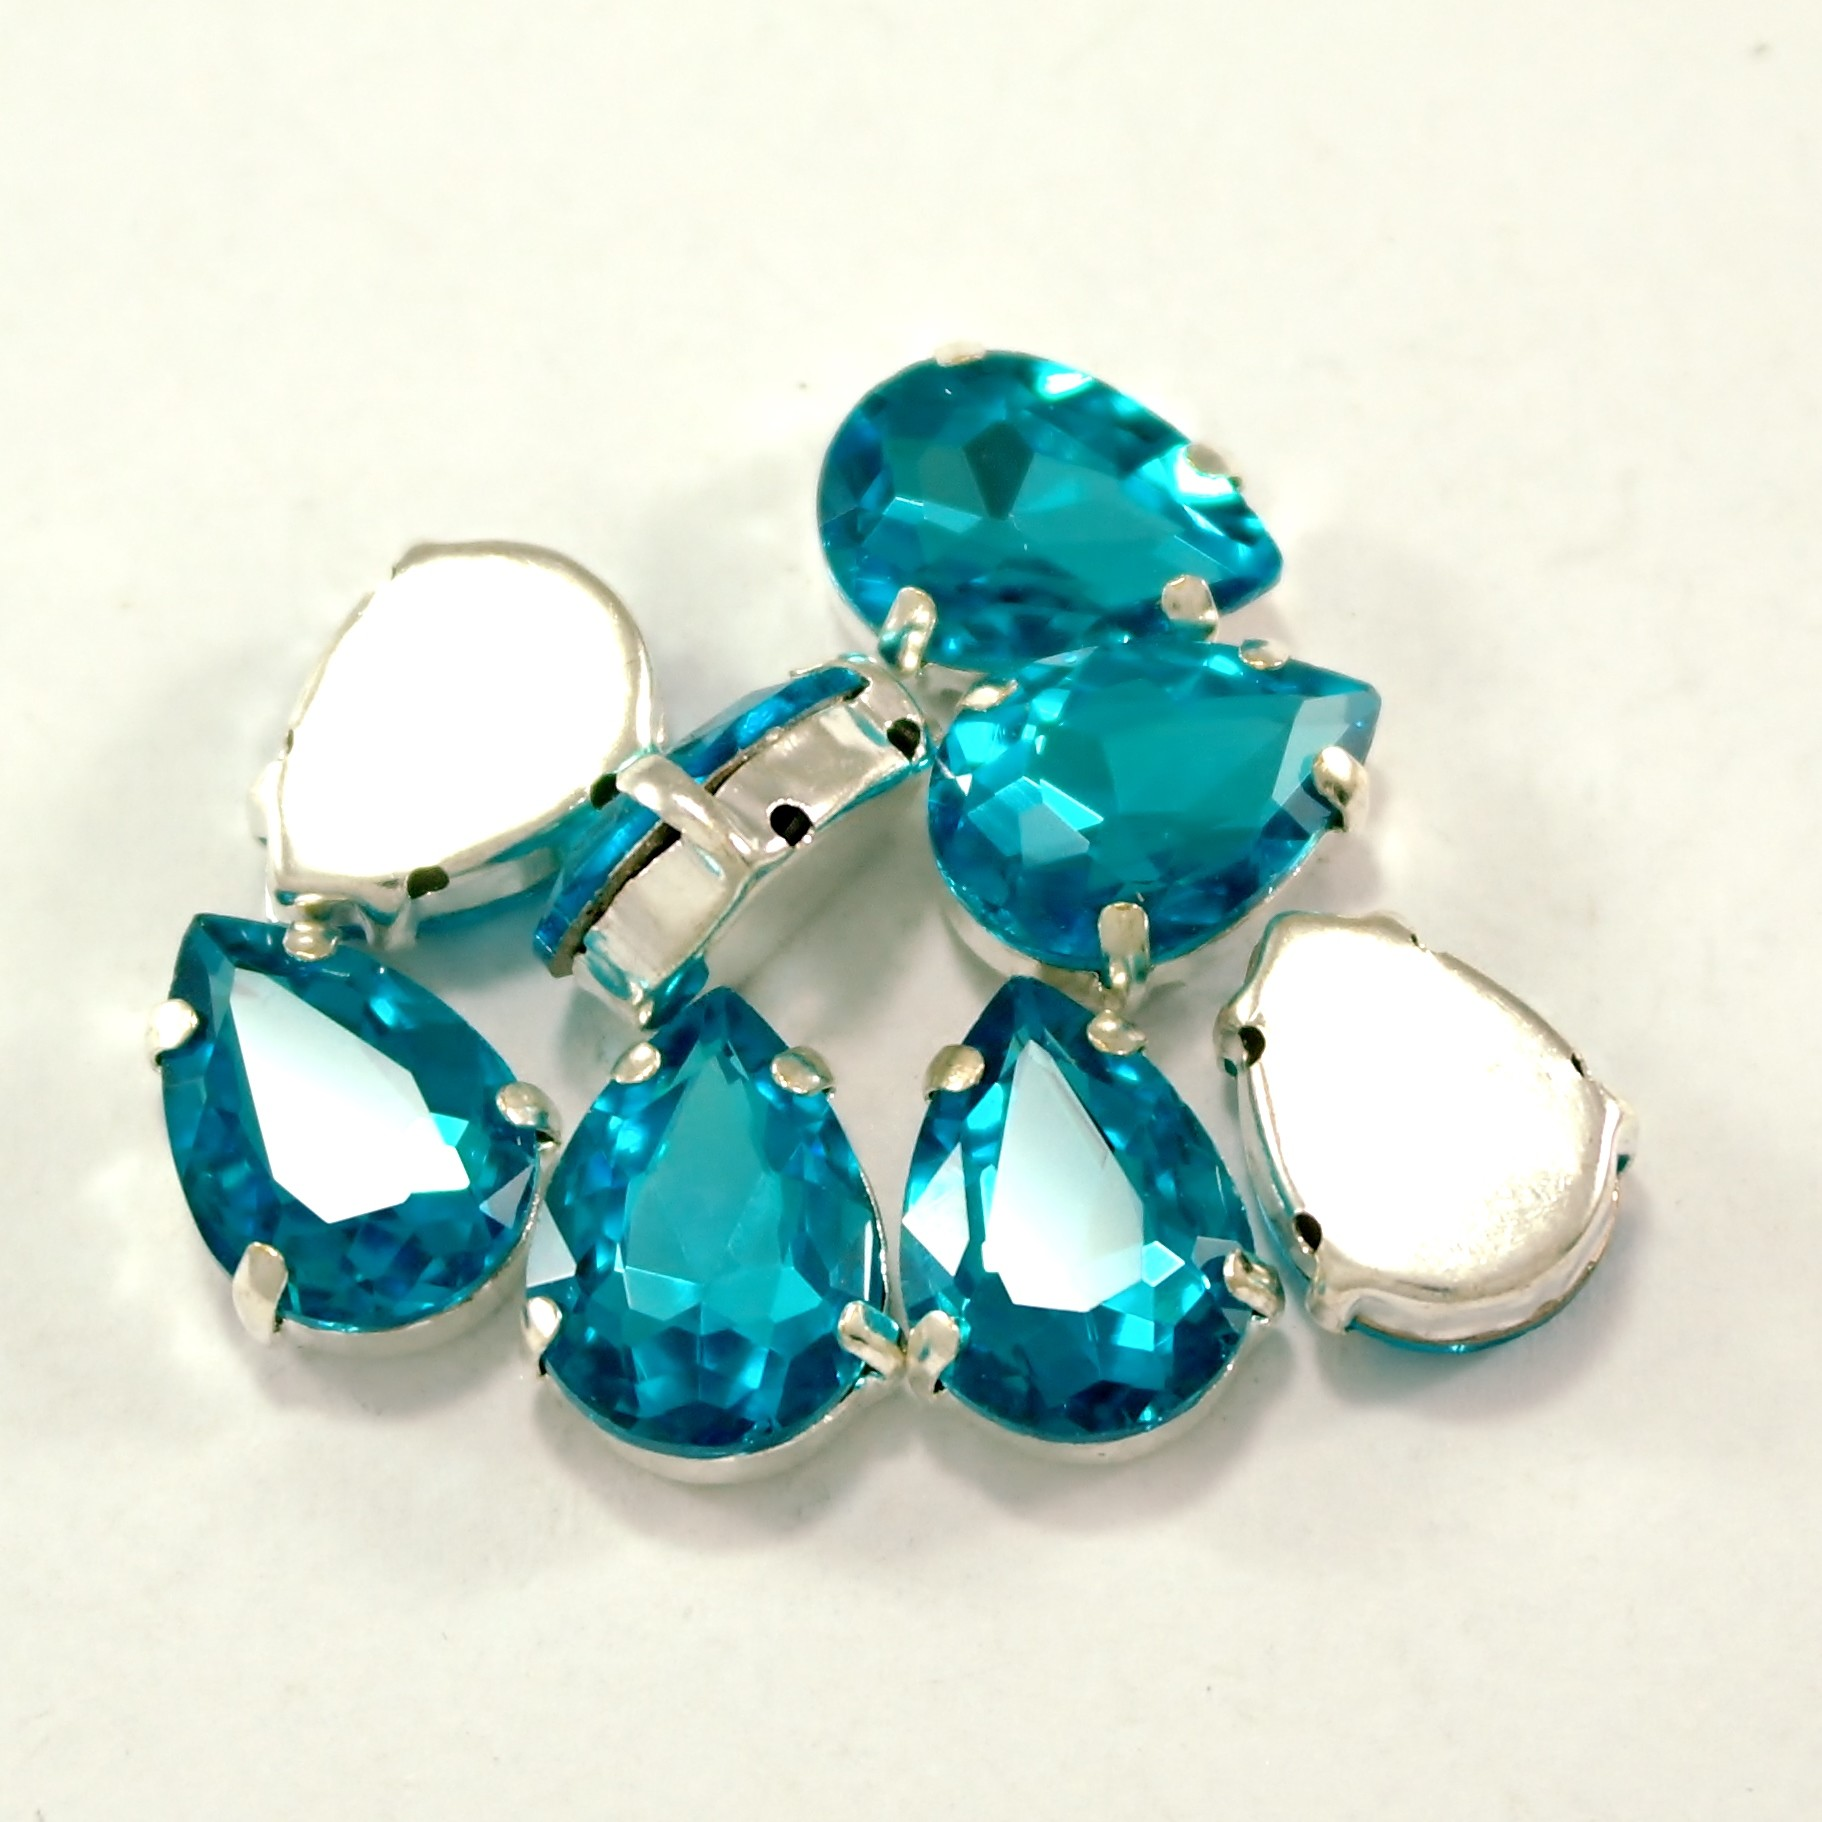 GLASS BEADS - AQUAMARINE TEAR DROP (T3)